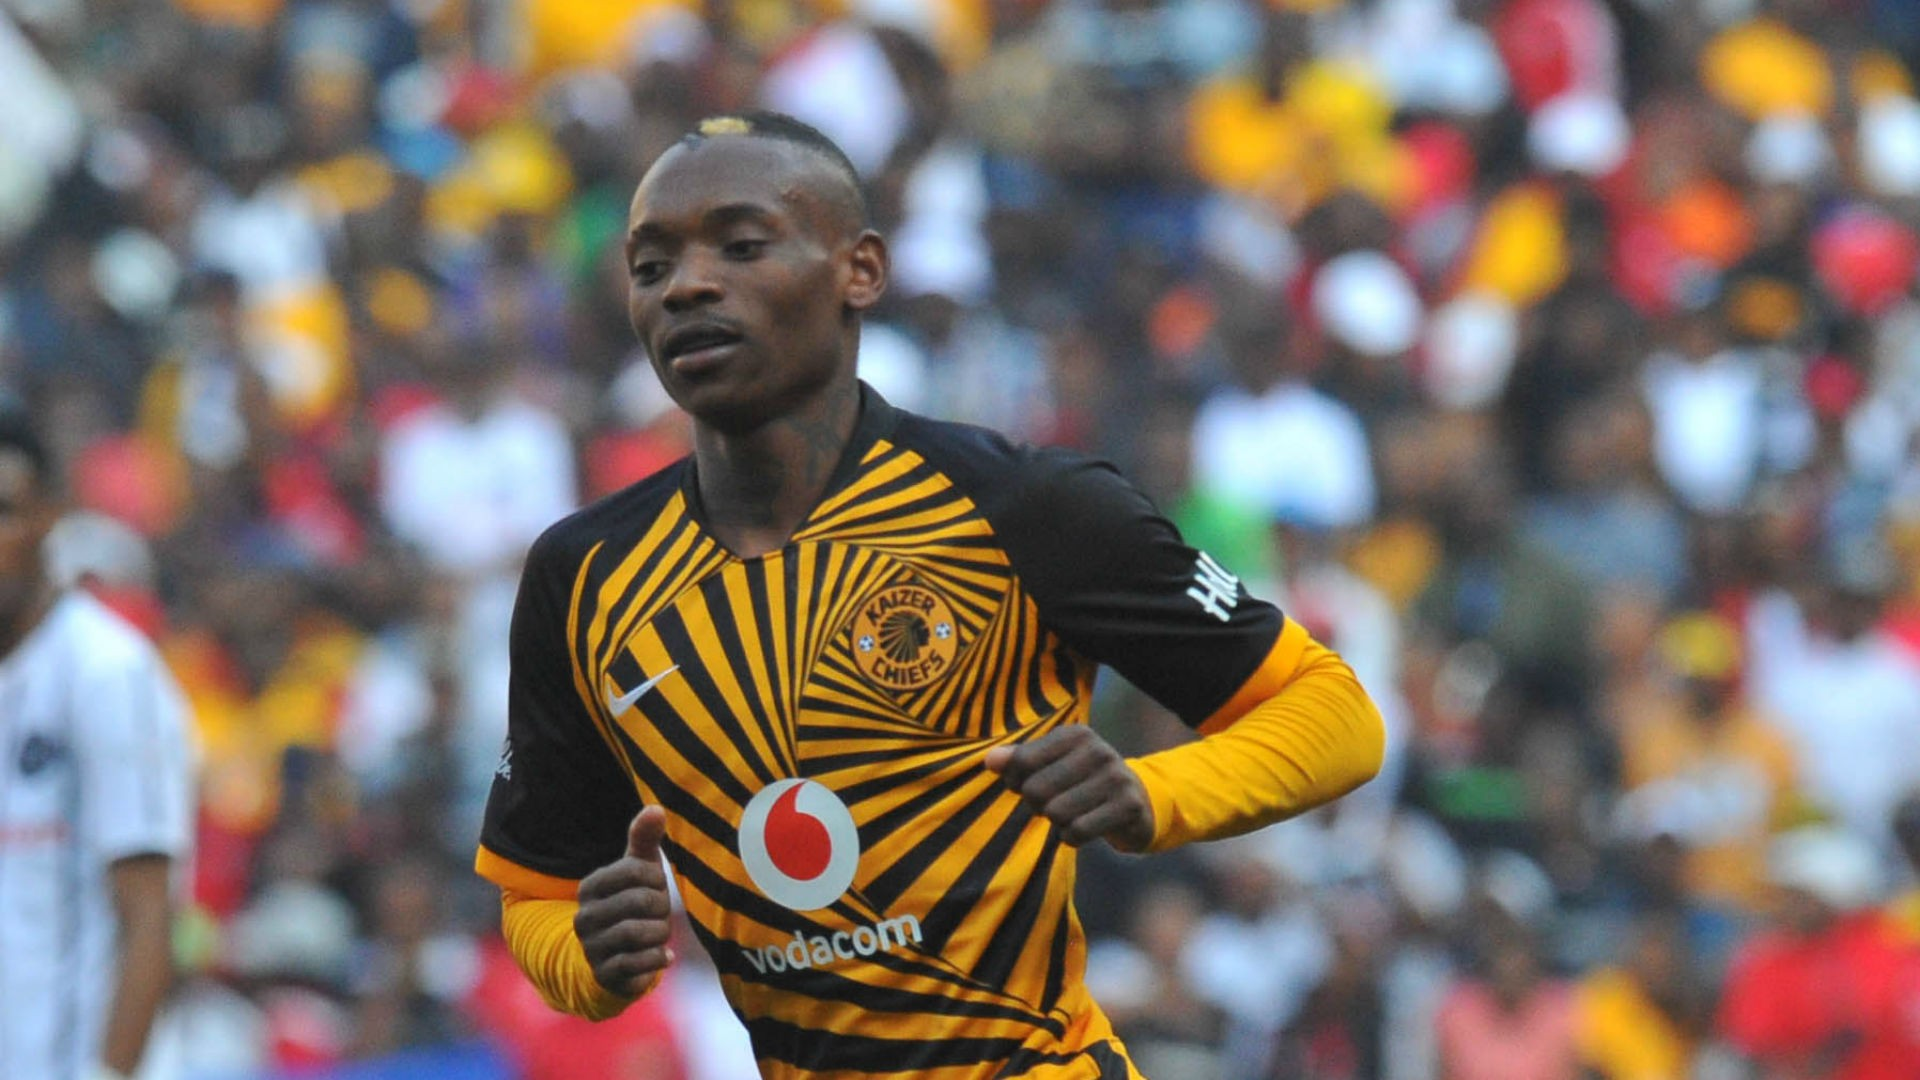 Why Kaizer Chiefs is going to beat Mamelodi Sundowns?